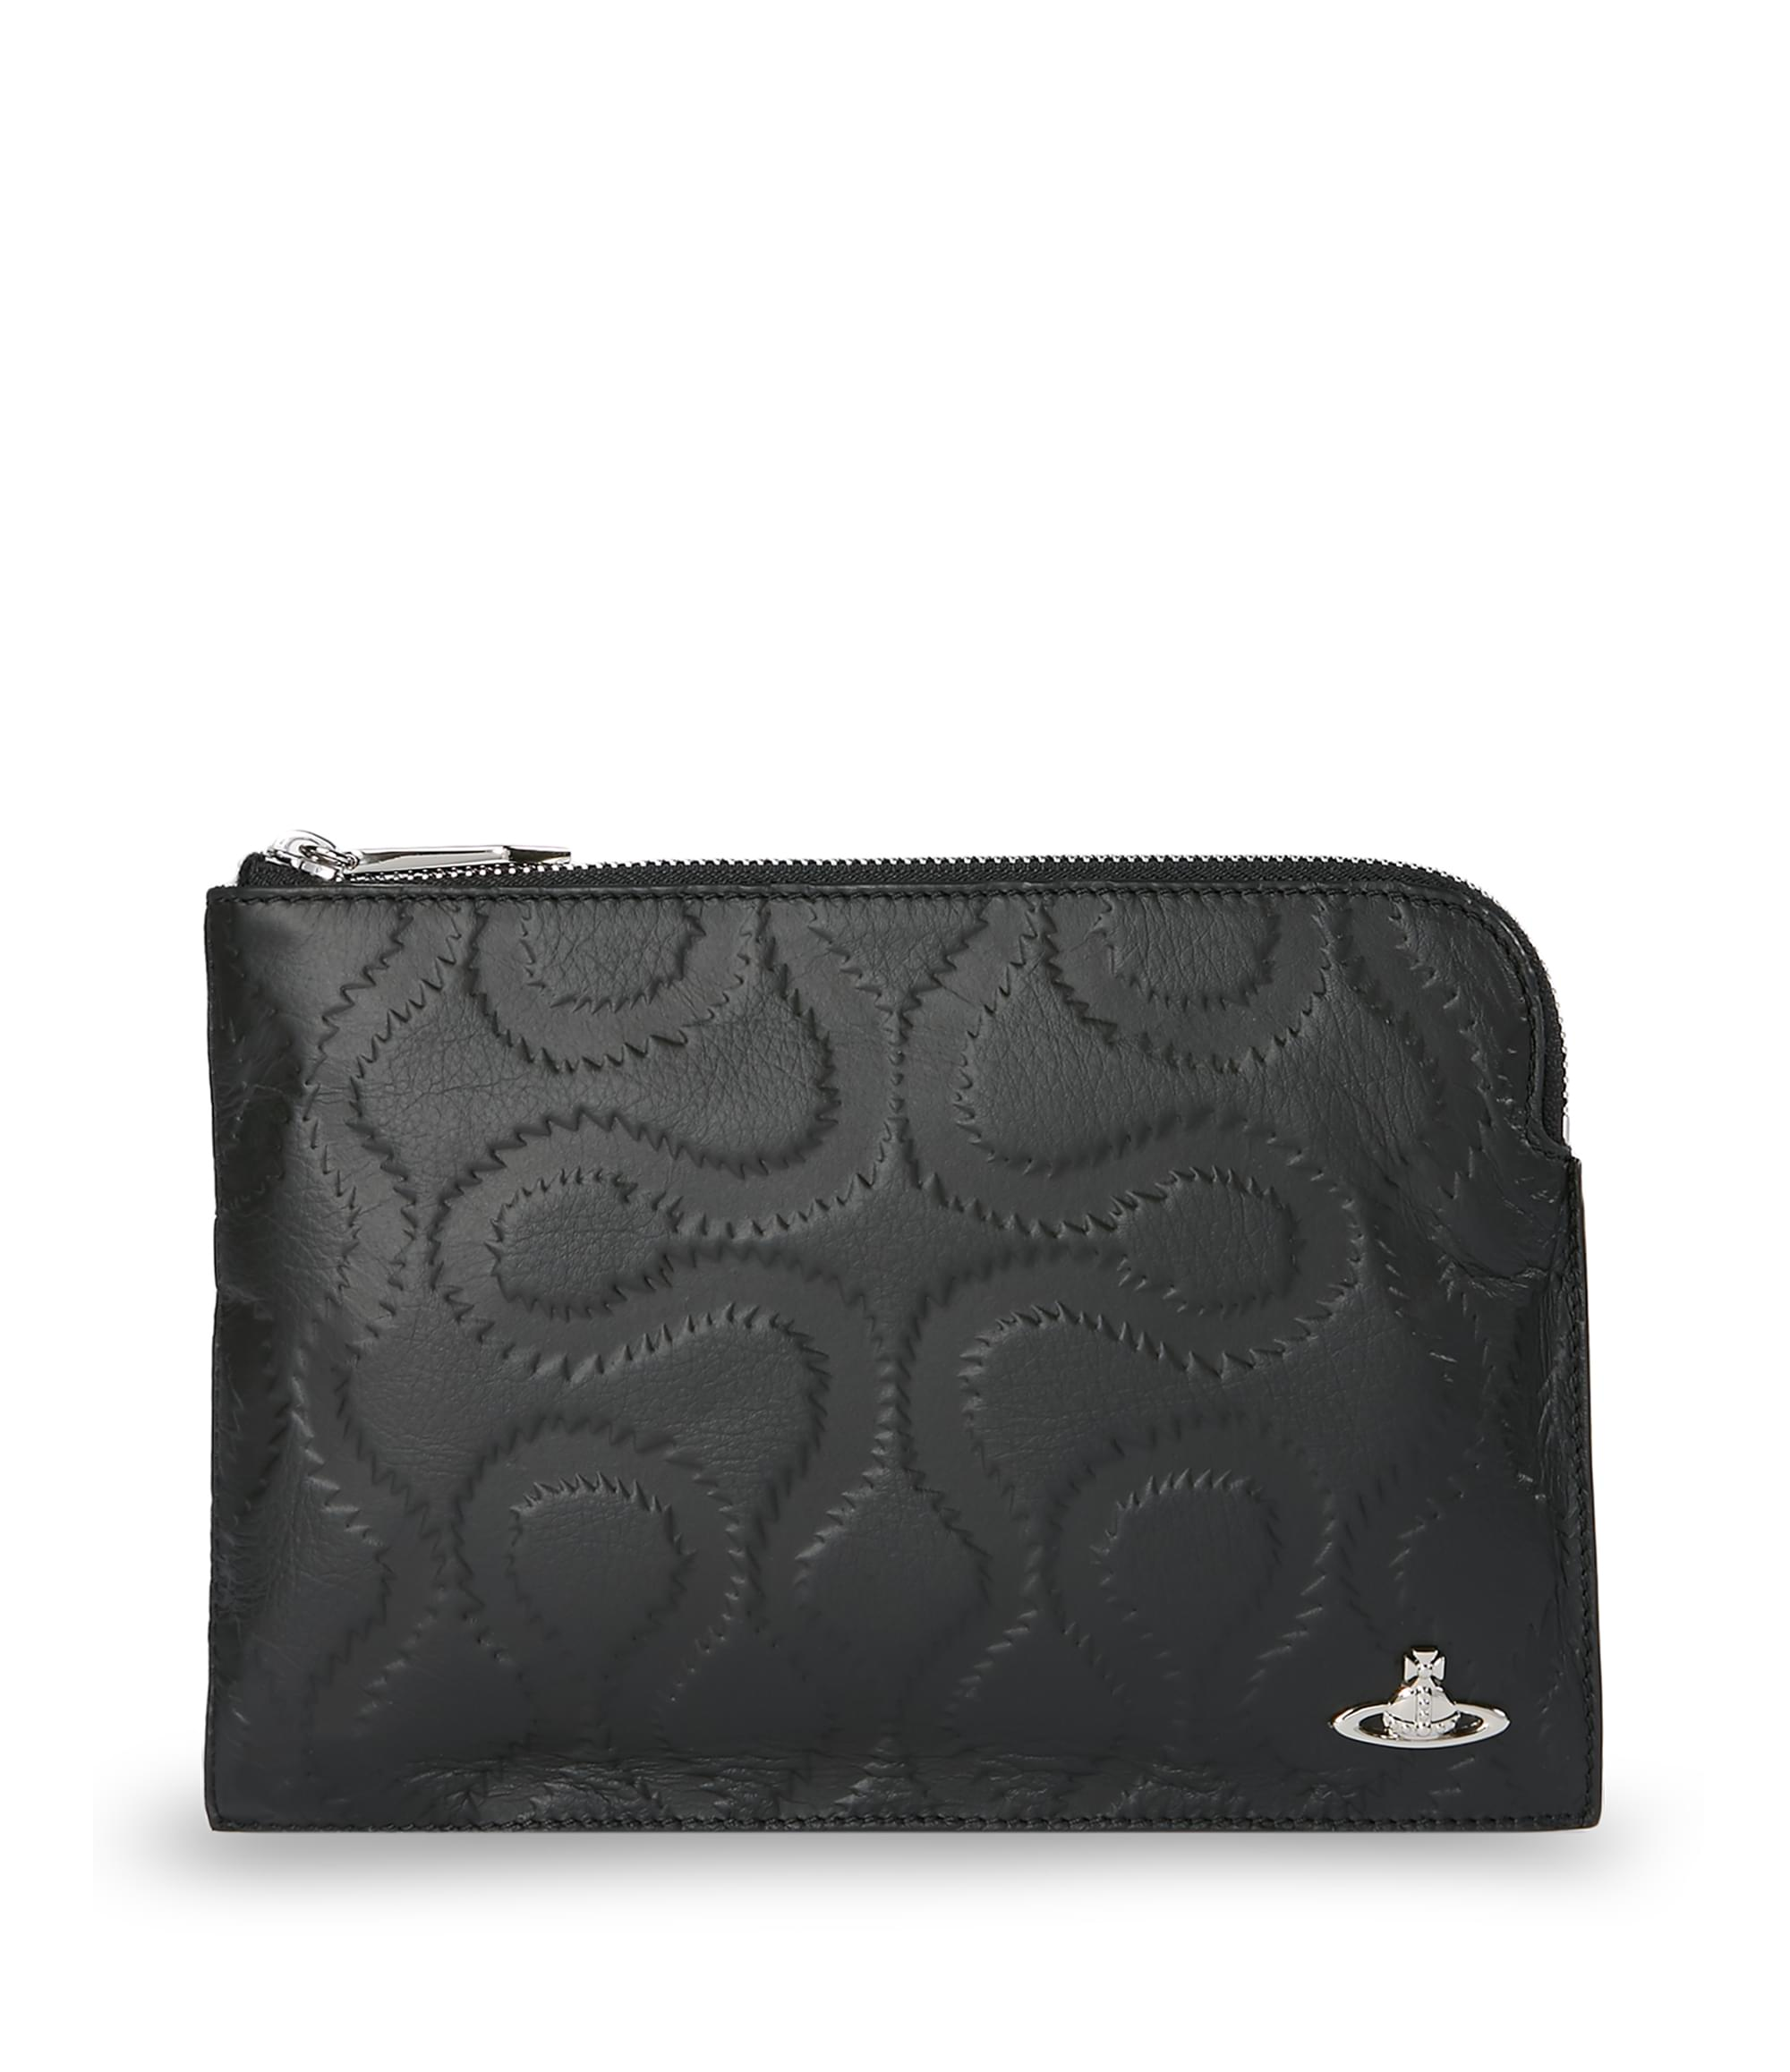 Vivienne Westwood Black Squiggle Small Pouch 131030